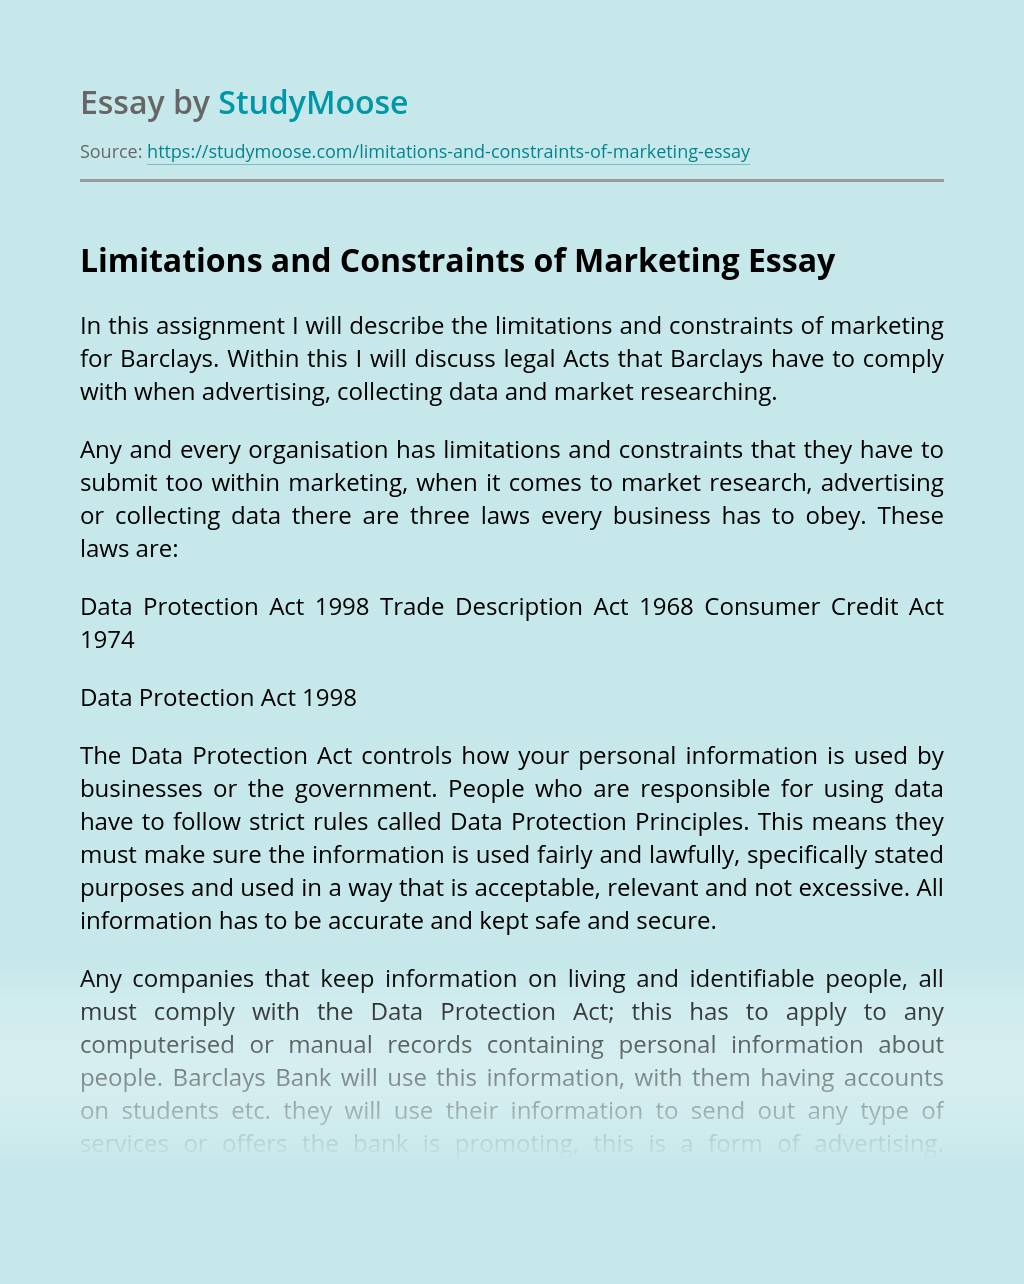 Limitations and Constraints of Marketing